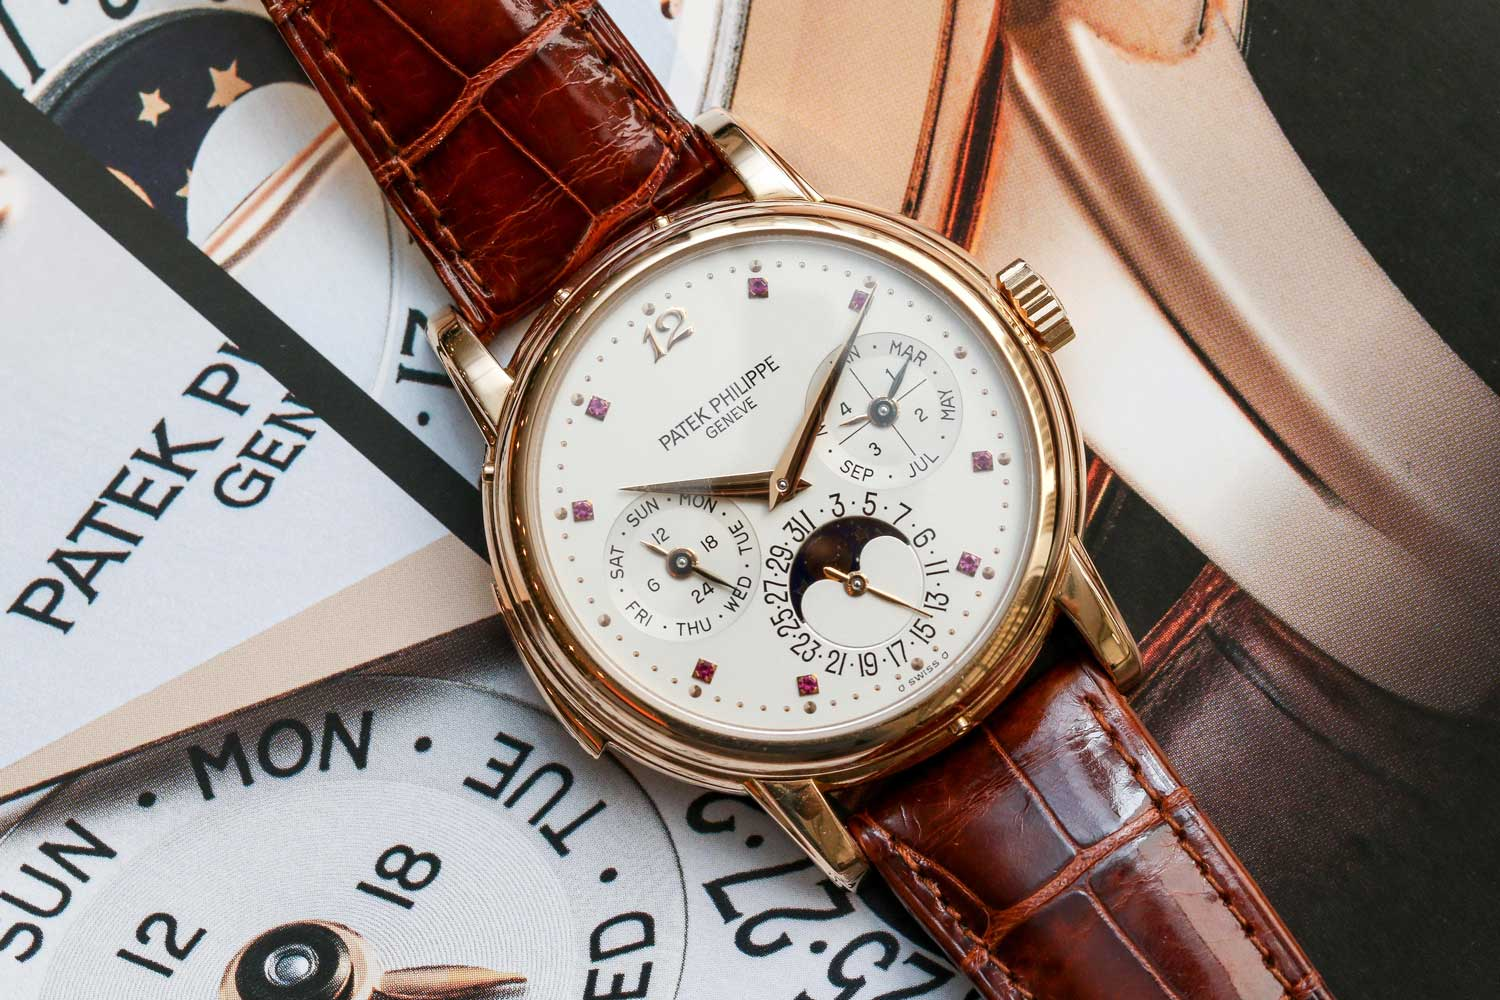 Possibly unique Patek Philippe ref. 3974R fitted with a ruby-set dial (©Revolution)